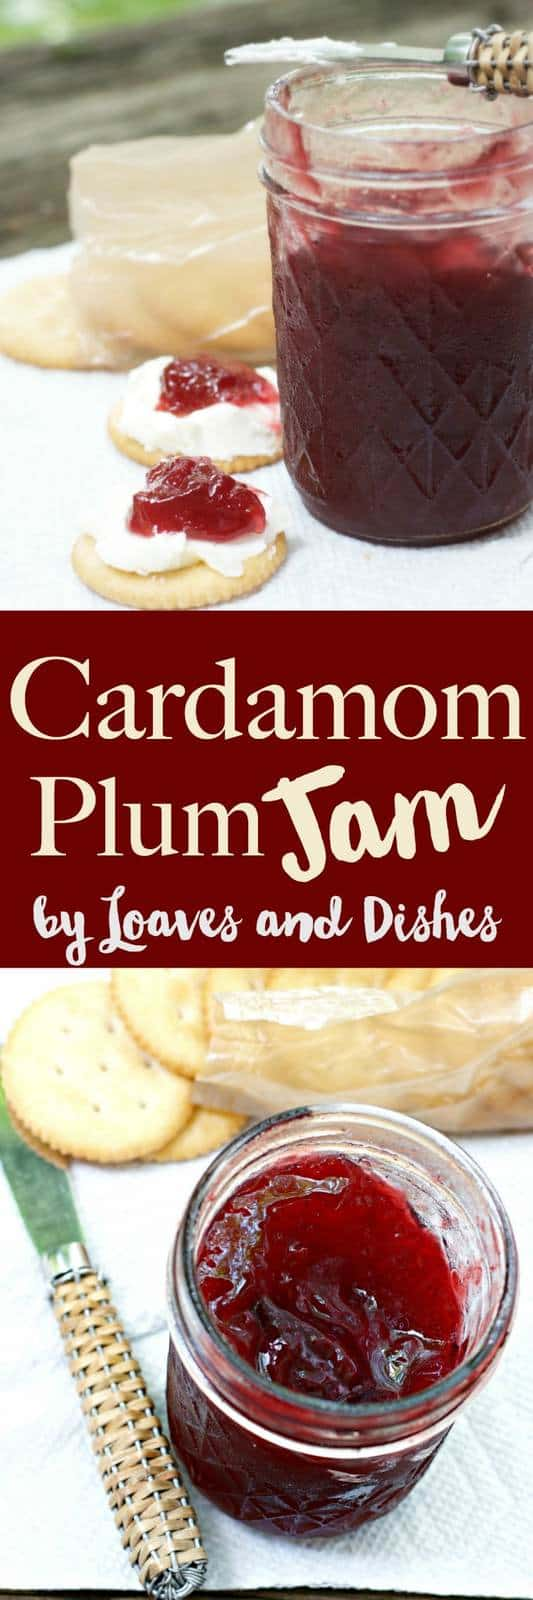 A sweet delicious recipe for home made jam that you can yourself using Indian spices and plums - Cardamom Plum Jam